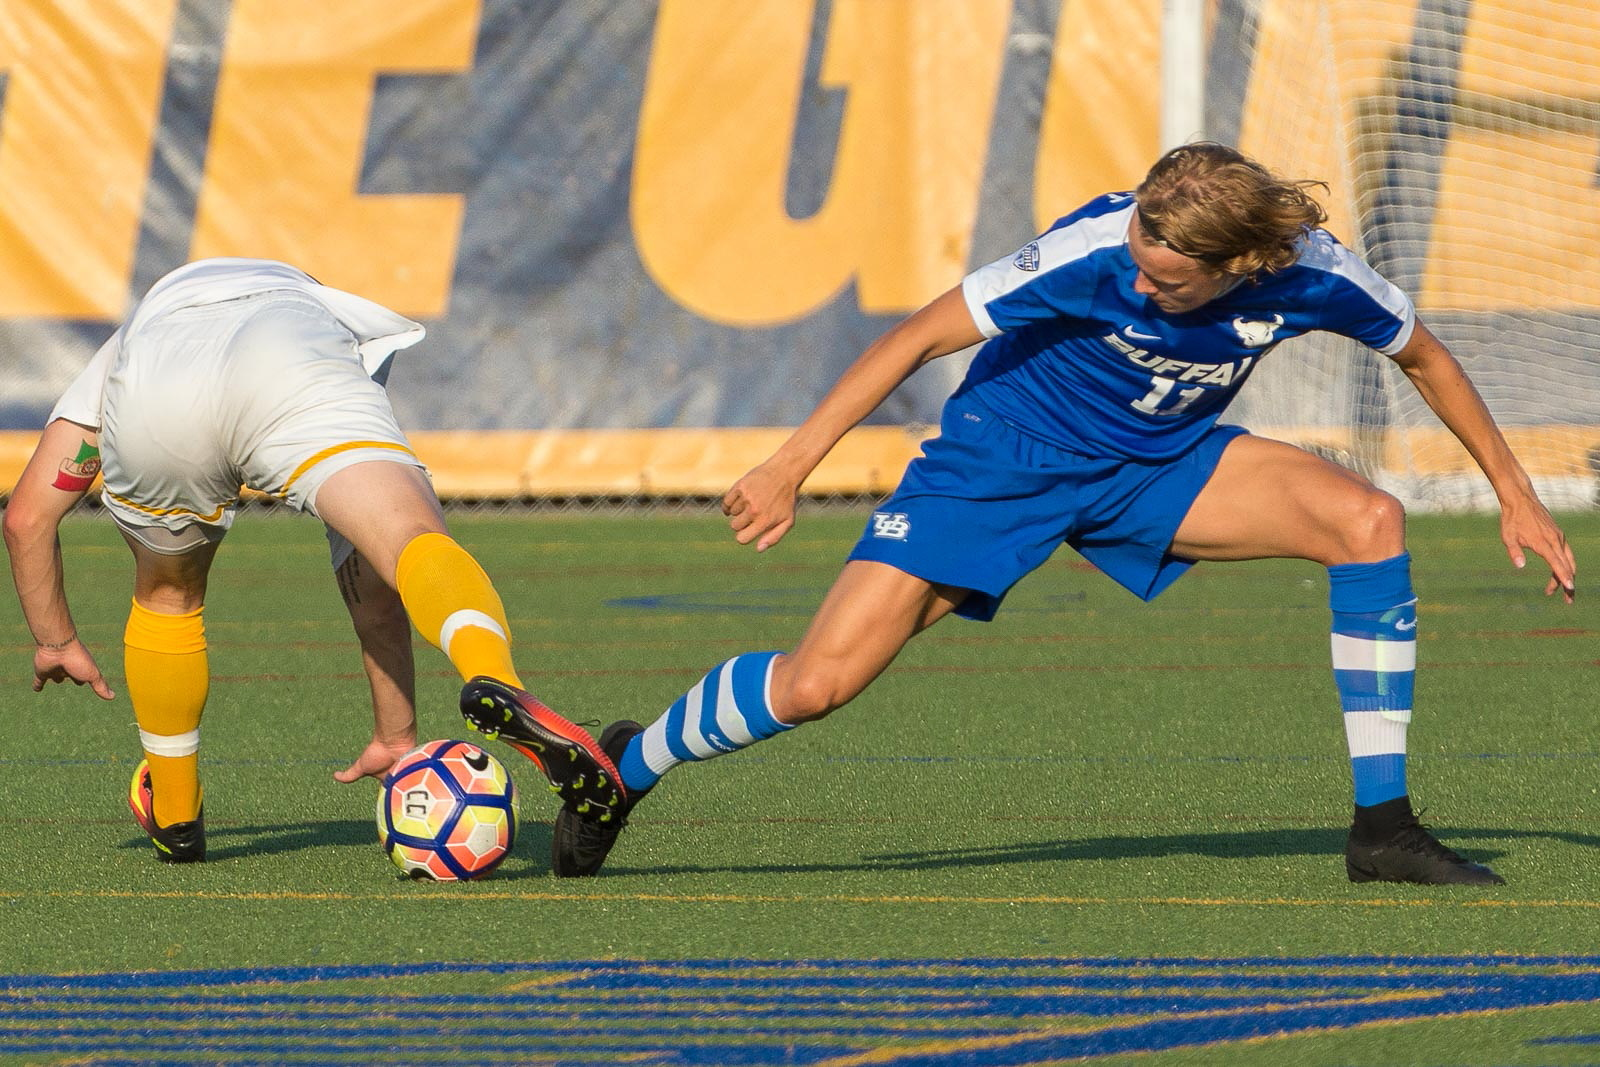 University at Buffalo midfielder/forward Rikard Lindqvist, right, has transferred to Northern Kentucky. (Don Nieman/Special to The News)